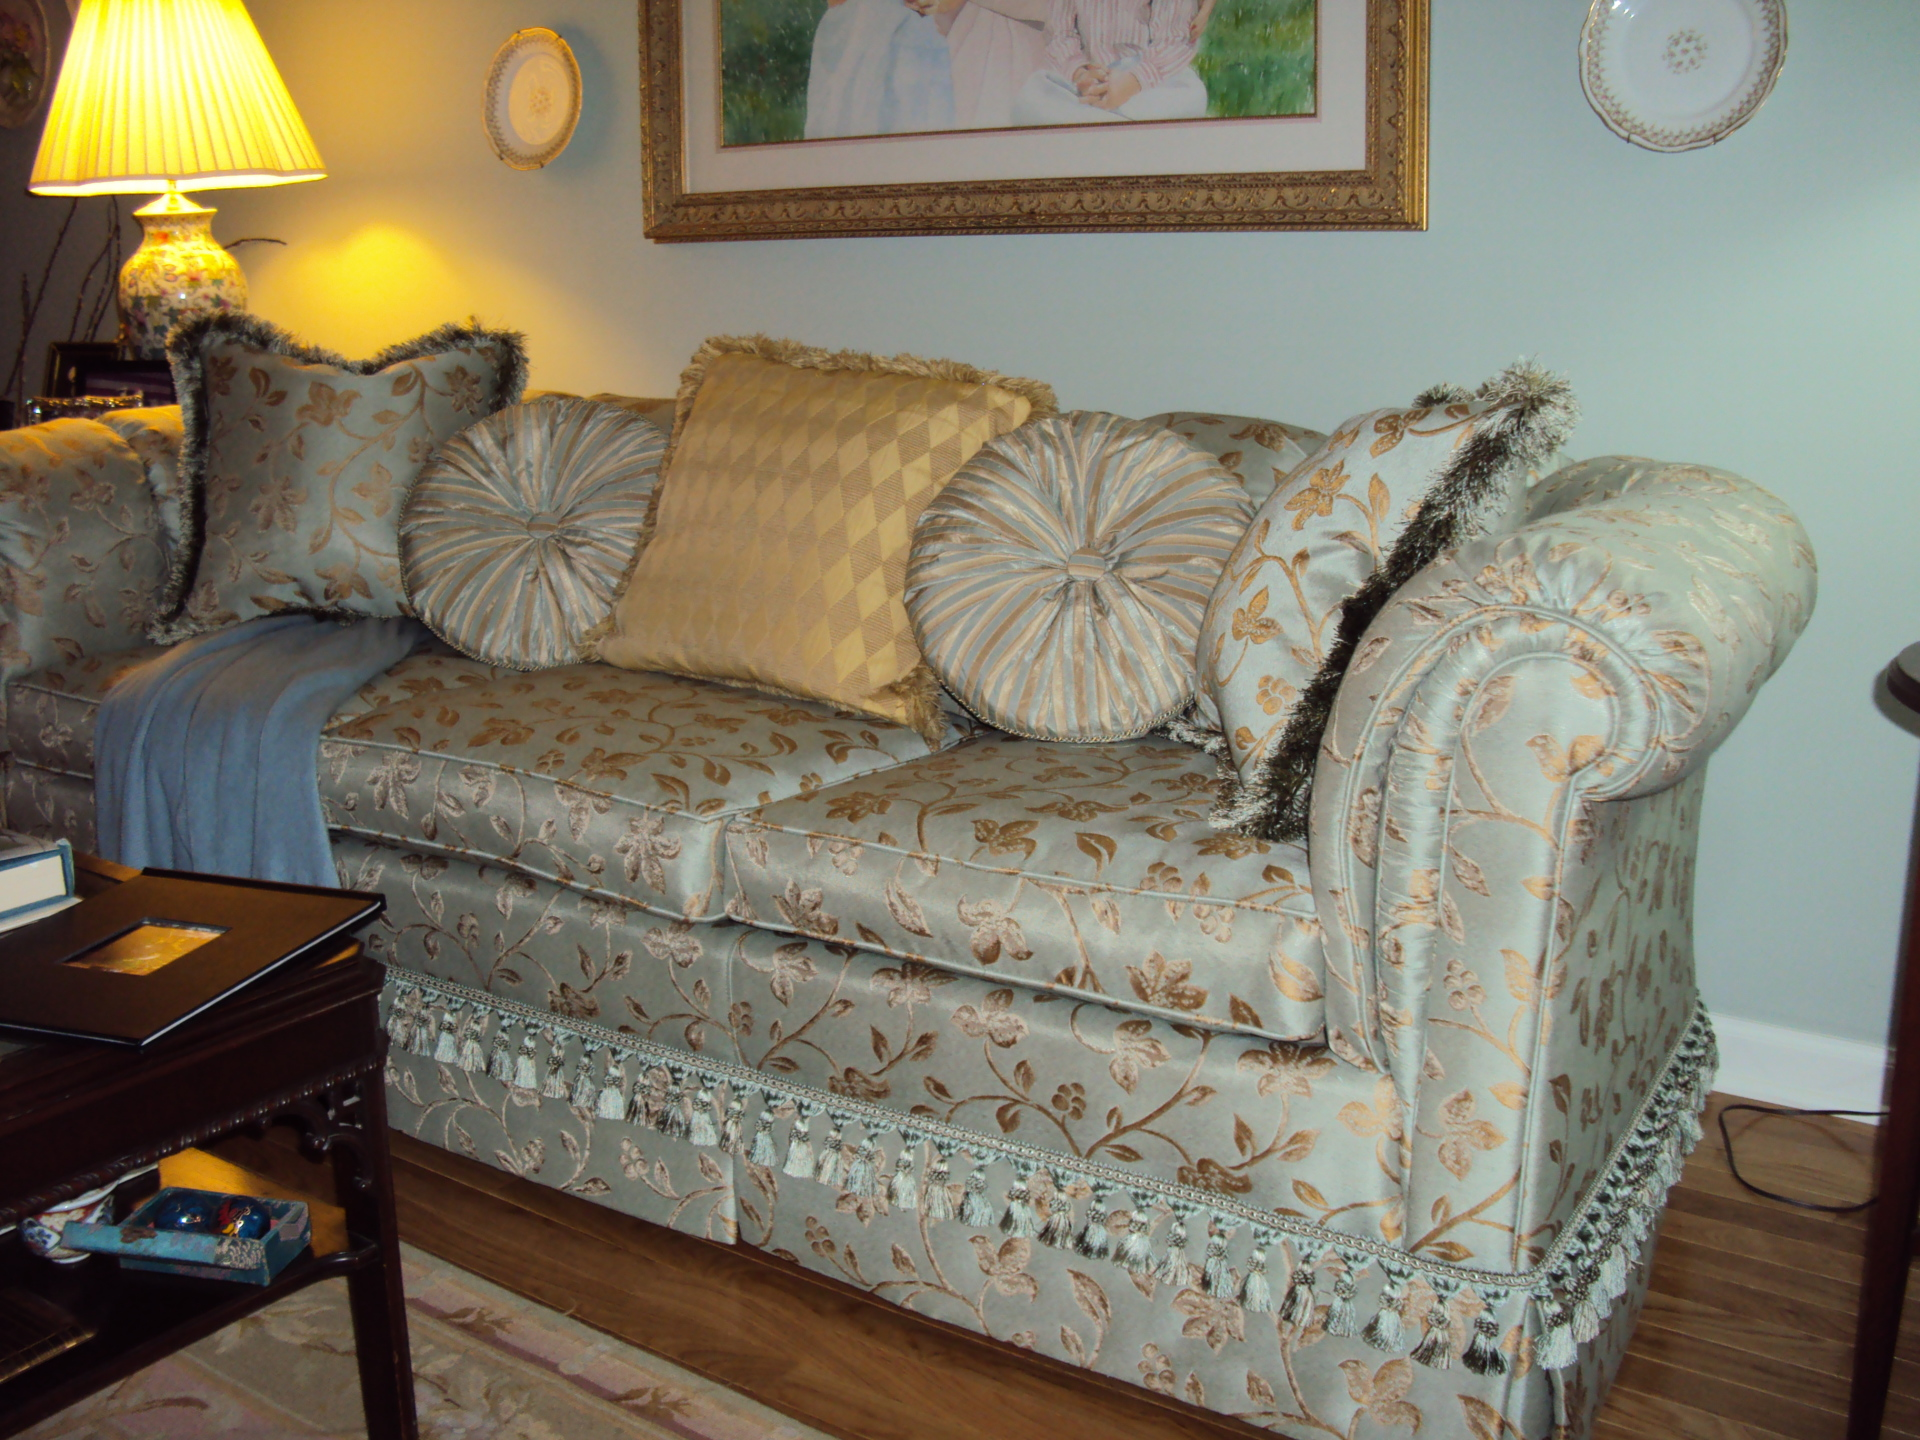 Sofa upholstered with comfort and style